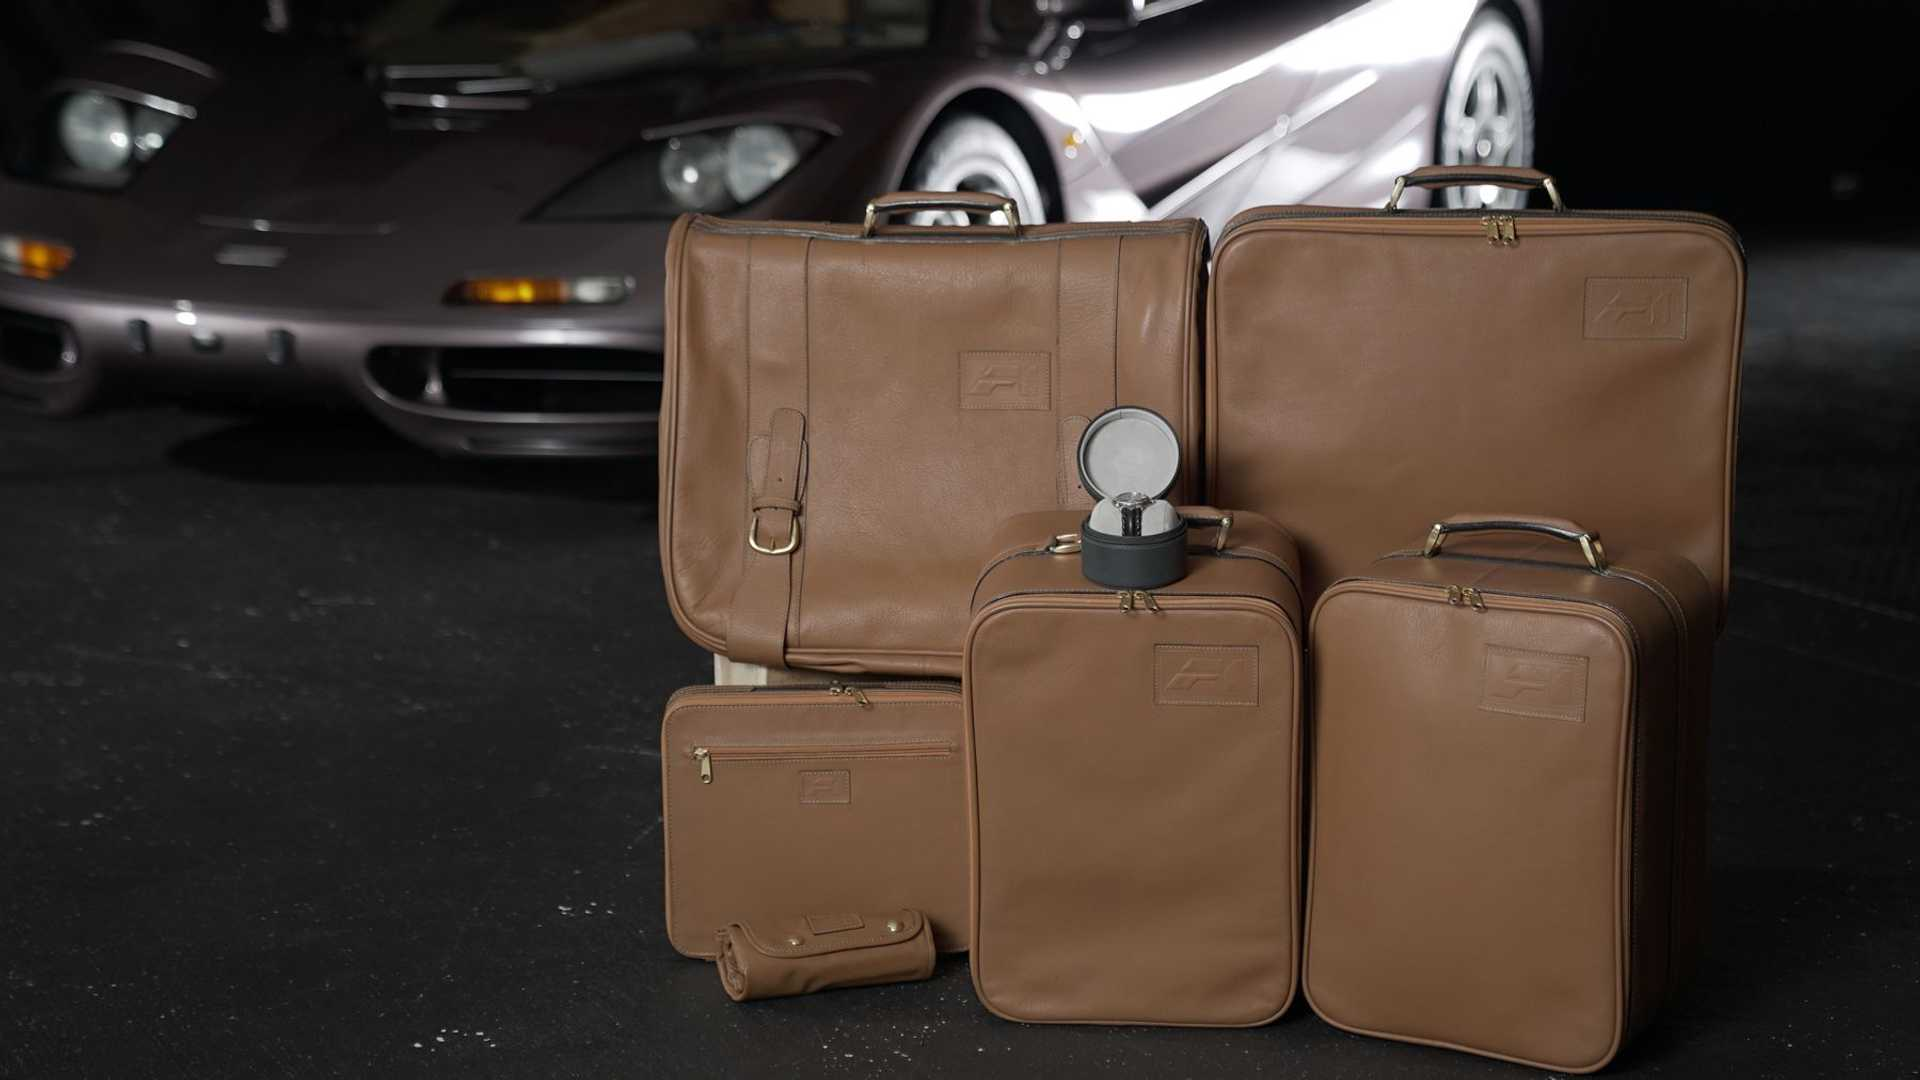 1995 McLaren F1 Gooding And Company Auction 2020 Luggage